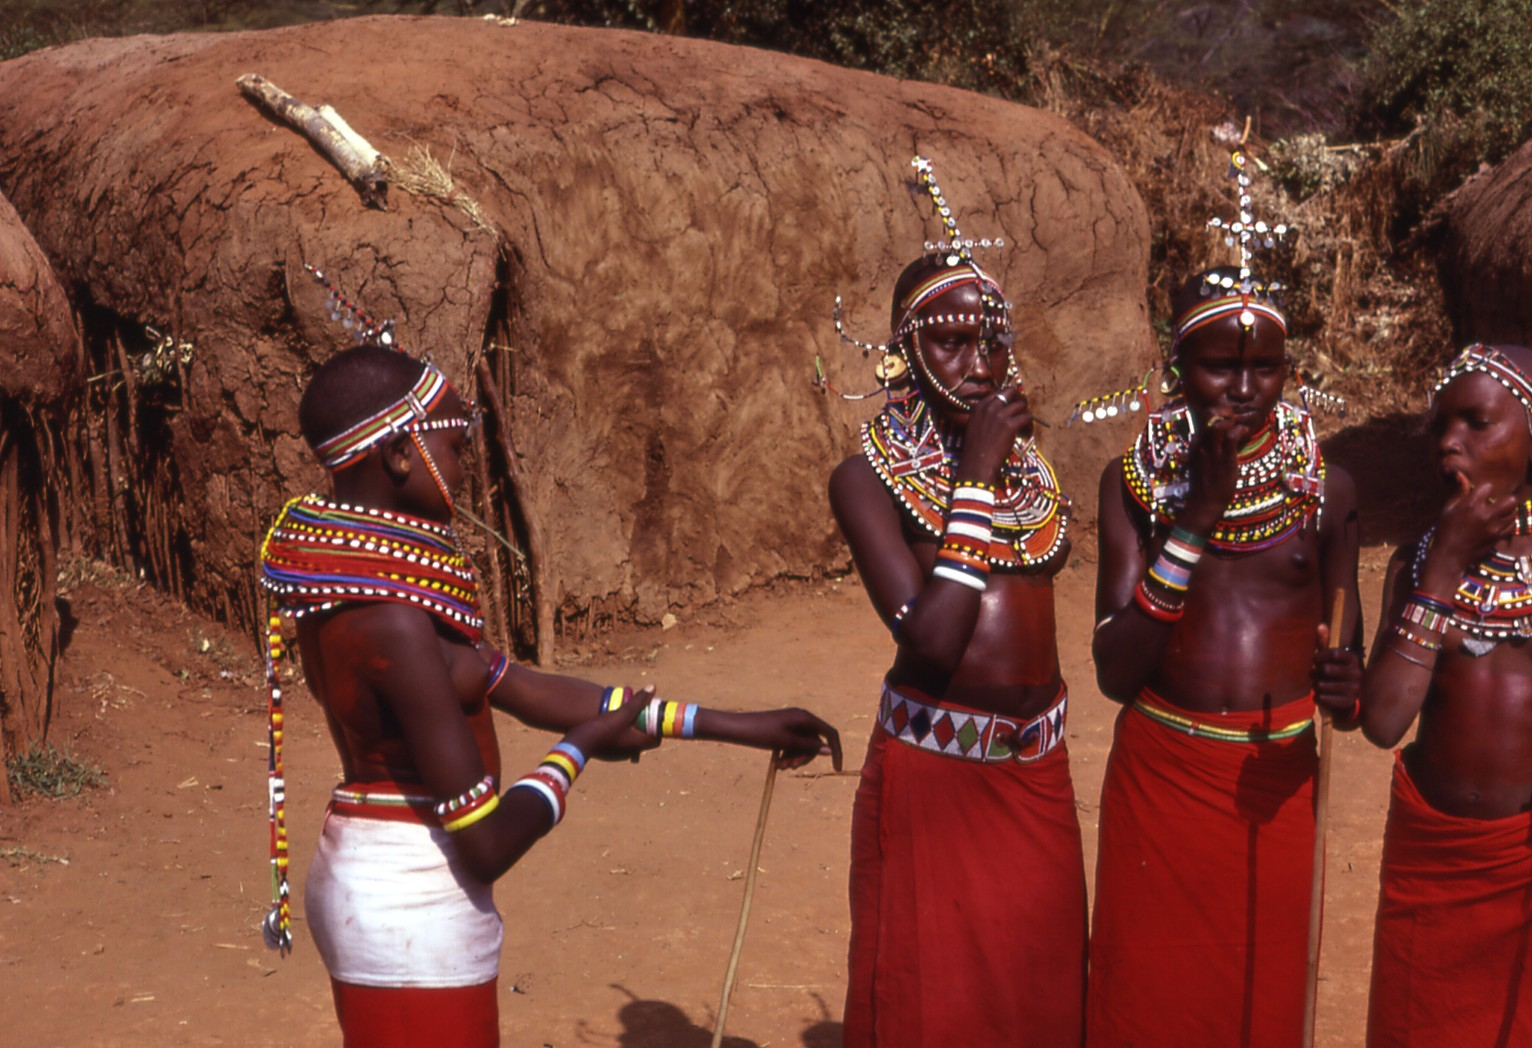 Masai tribe porn videos nude photos